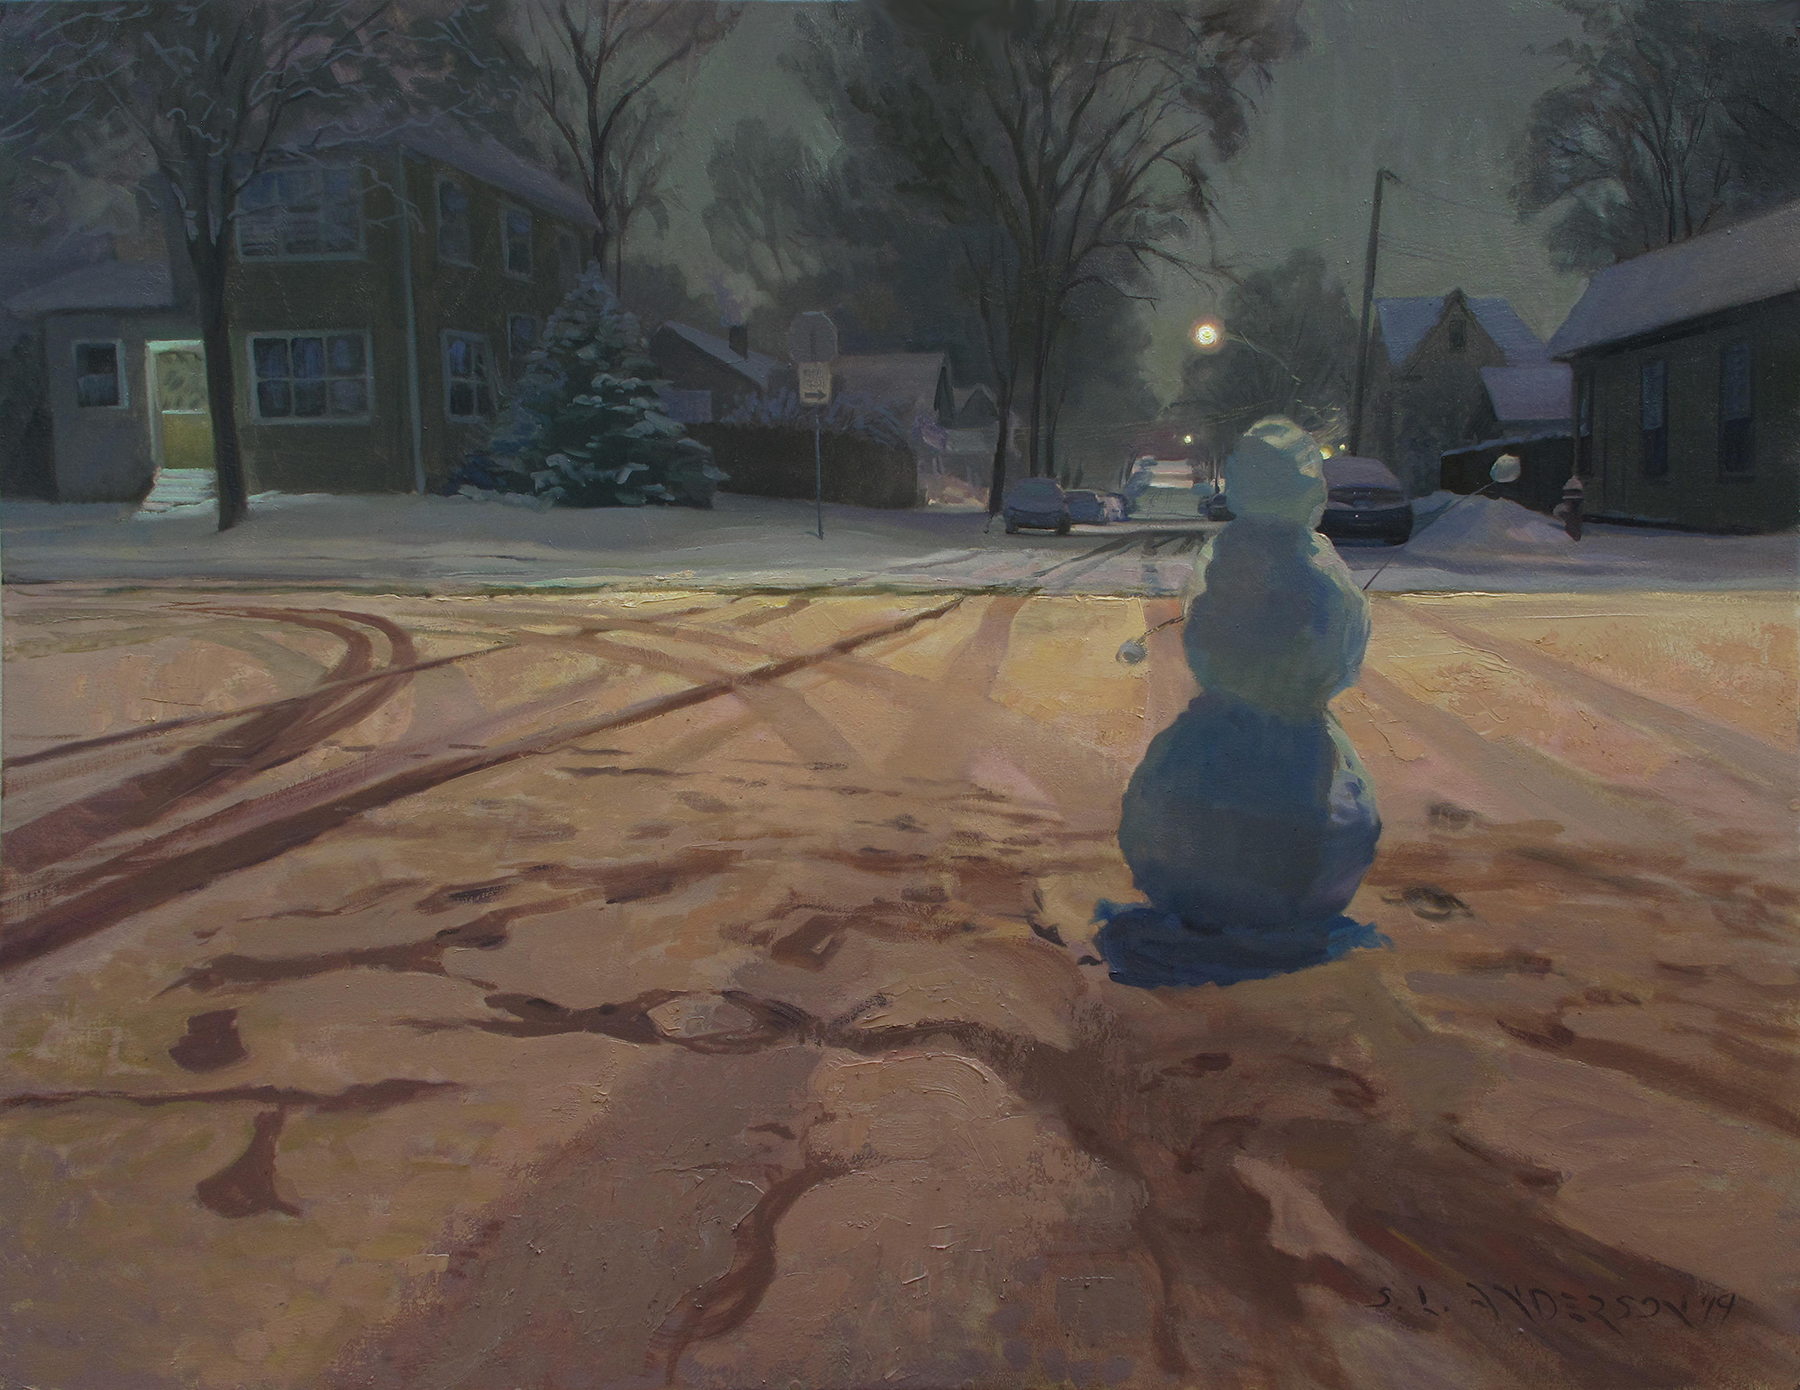 Night at the Intersection  36 x 48 oil on canvas When our kids were little, they used to build 3- to 4-foot snow people then set them in the middle of our quiet—but not  totally  quiet—side street. They'd sit behind the backyard fence and watch as cars came along. Most drivers would ease up, then… Would they slowly smush the little guy? Accelerate to ramming speed and explode it? It was always a pleasant surprise how many people would carefully drive around, presumably with a smile on their faces. Safety advocates might not recommend this pastime  (Don't try this at home, kids!),  but it beats YouTube.